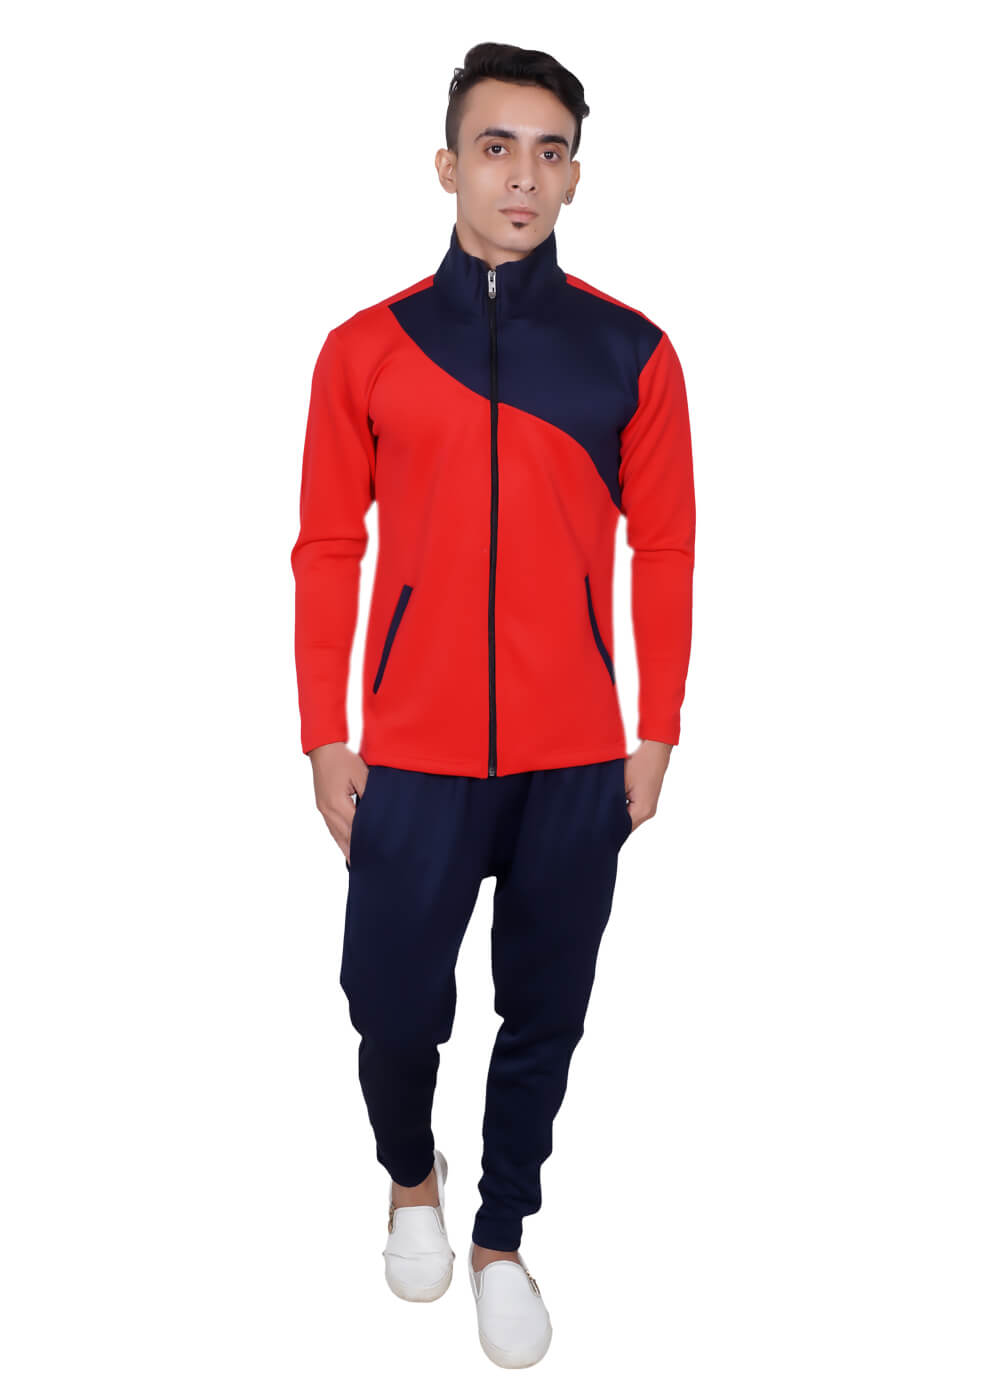 Cheap Tracksuits Manufacturers in Nashik